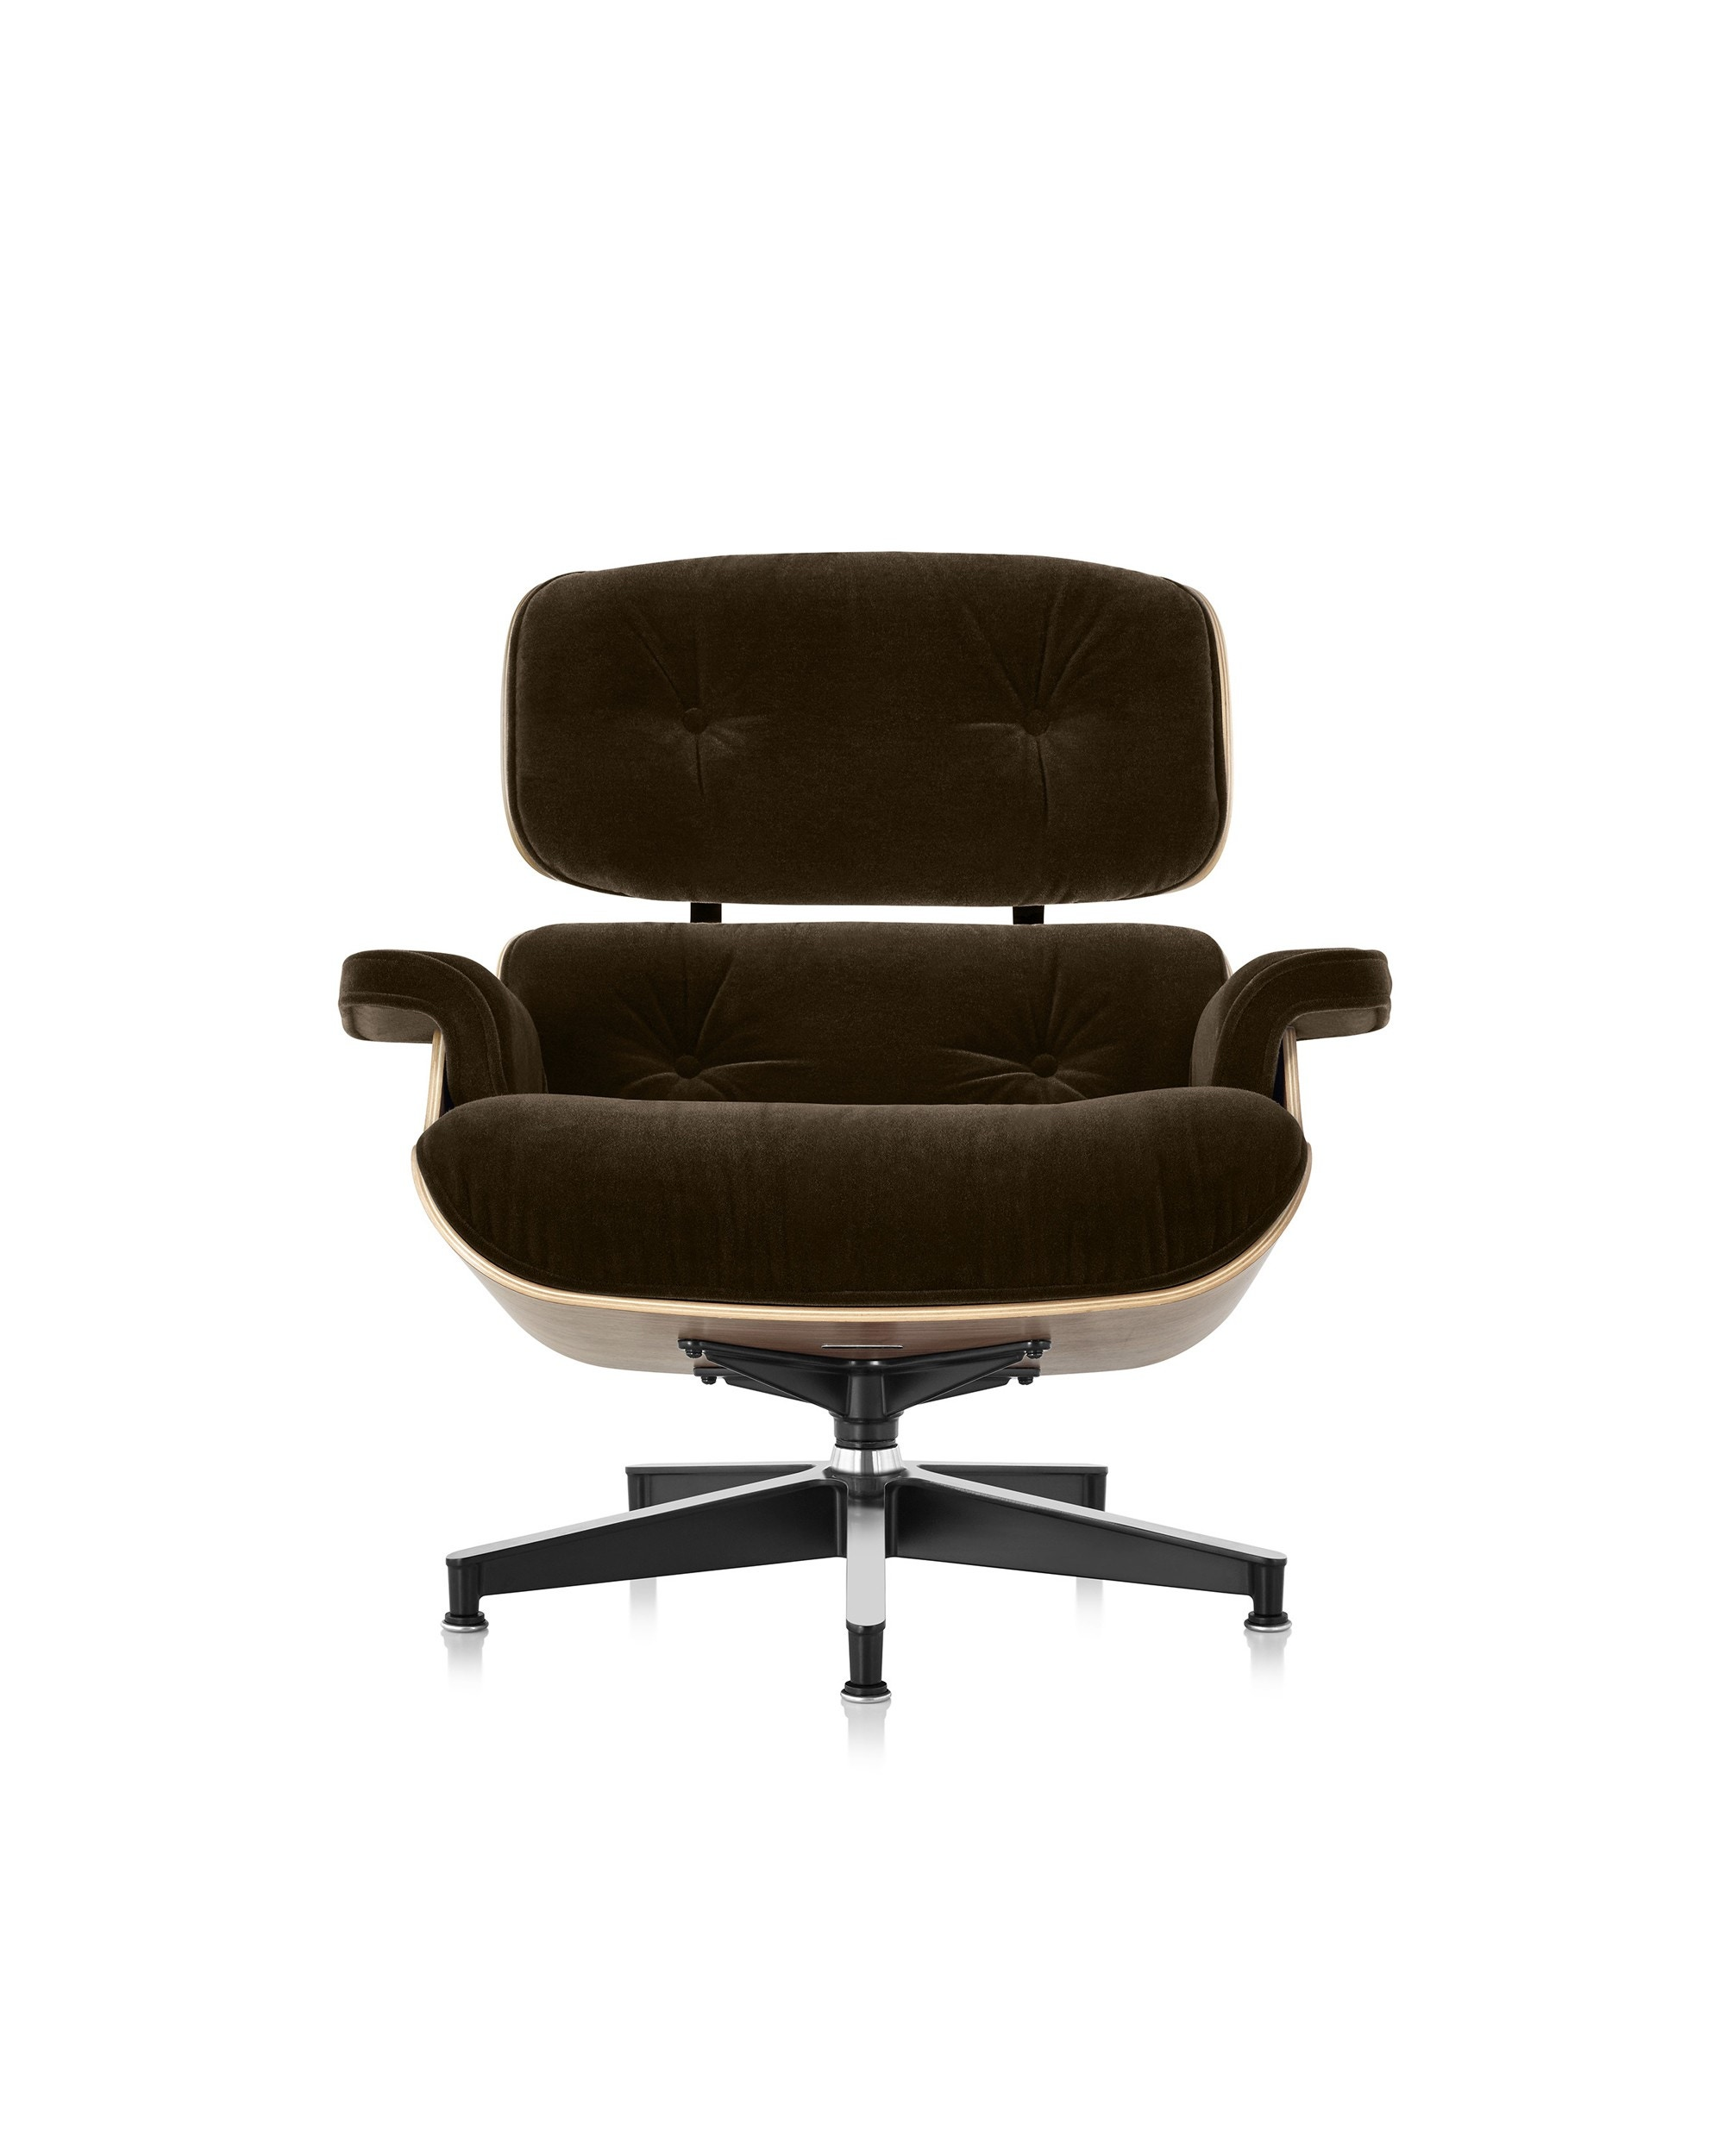 Herman Miller Eames® Lounge Chair in Mohair Supreme